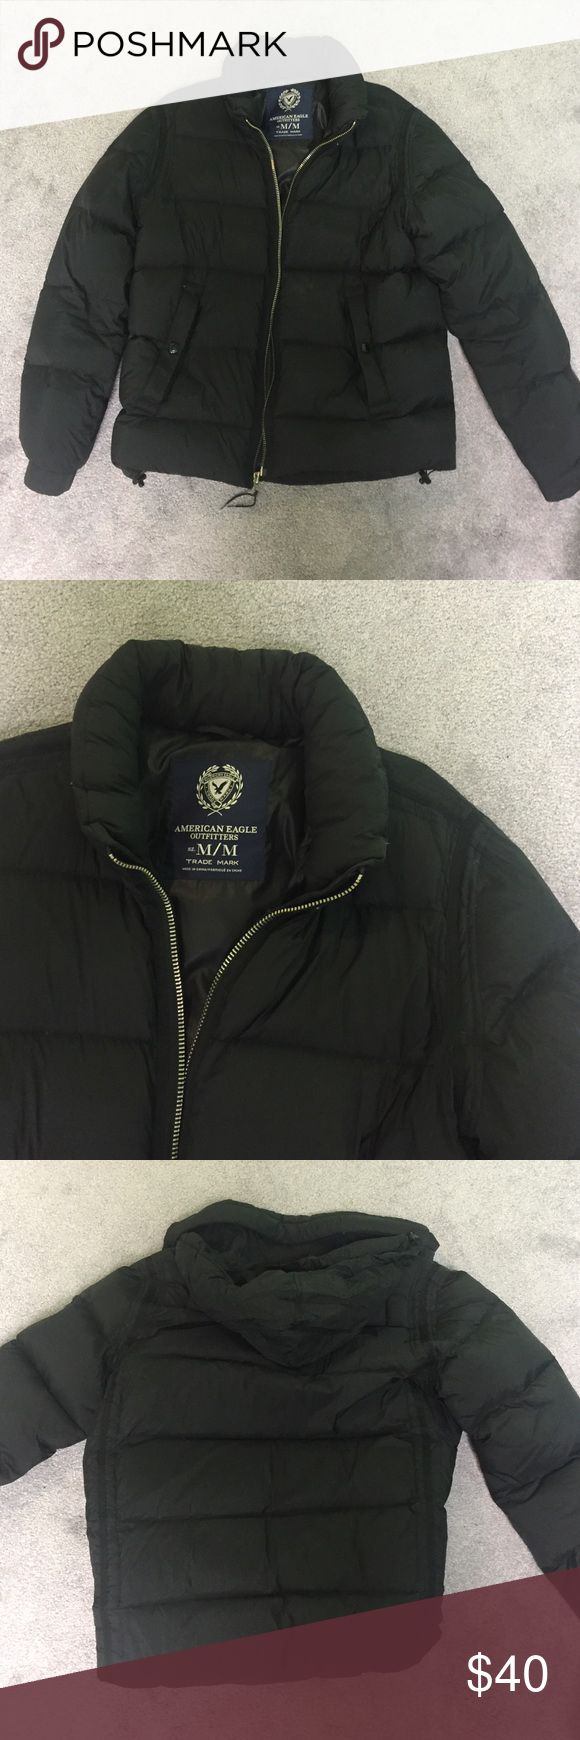 ✨ American eagle men's puffer coat American eagle puffer coat, size medium, black, 70% down, hideaway hood, elastic cuffs, snap pockets in front, inside pocket, bungee cord waist, great condition! American Eagle Outfitters Jackets & Coats Puffers